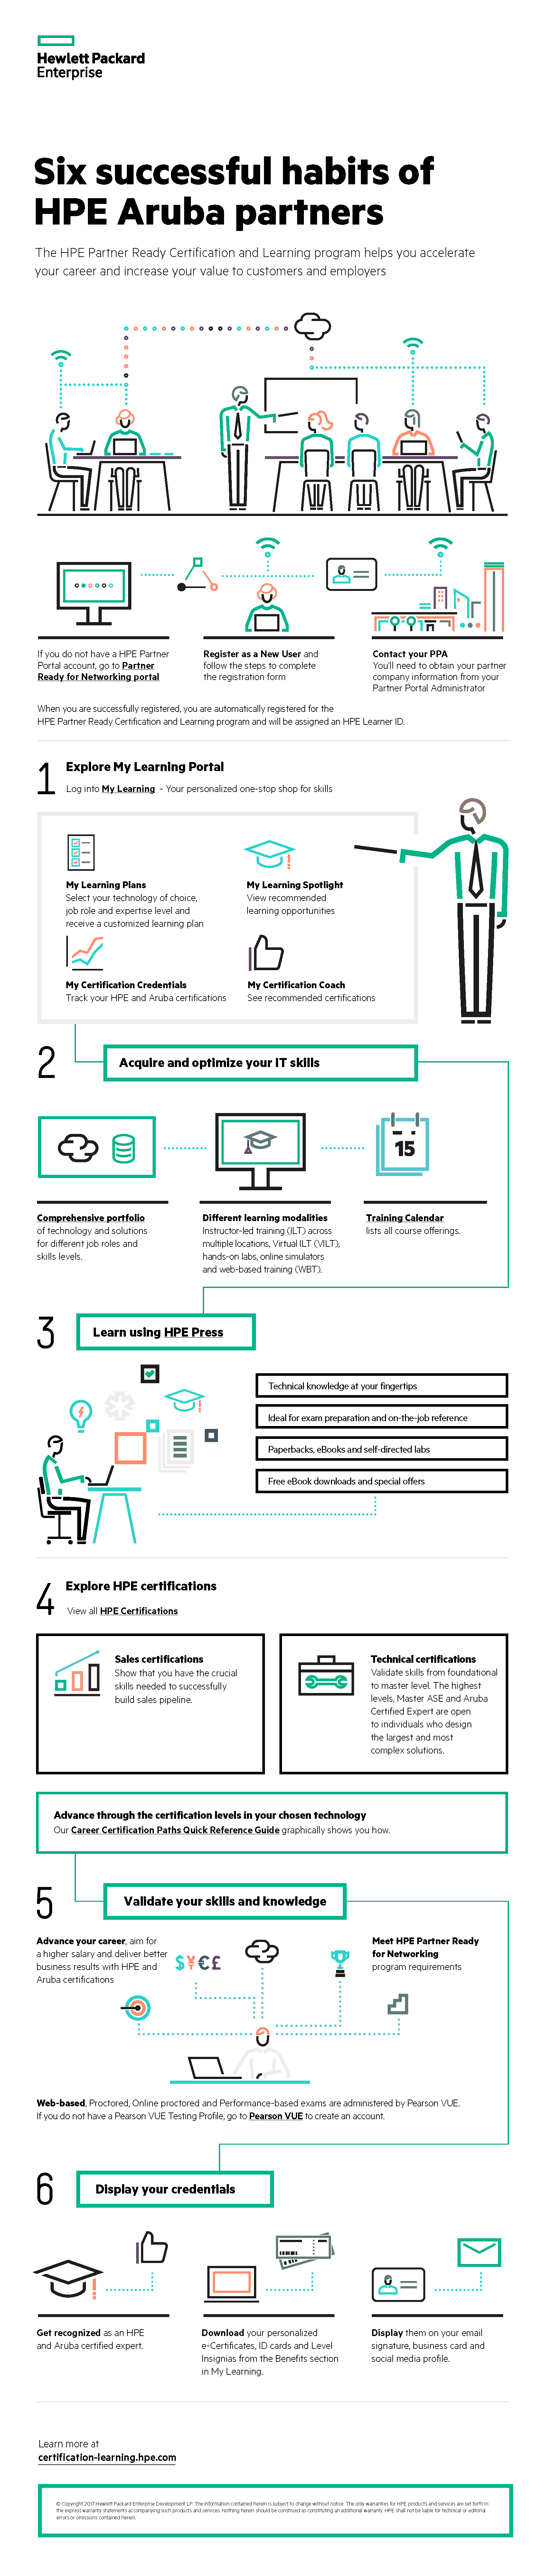 HPE Partner Ready Certification and Learning Infographic for Aruba partners_060717.png